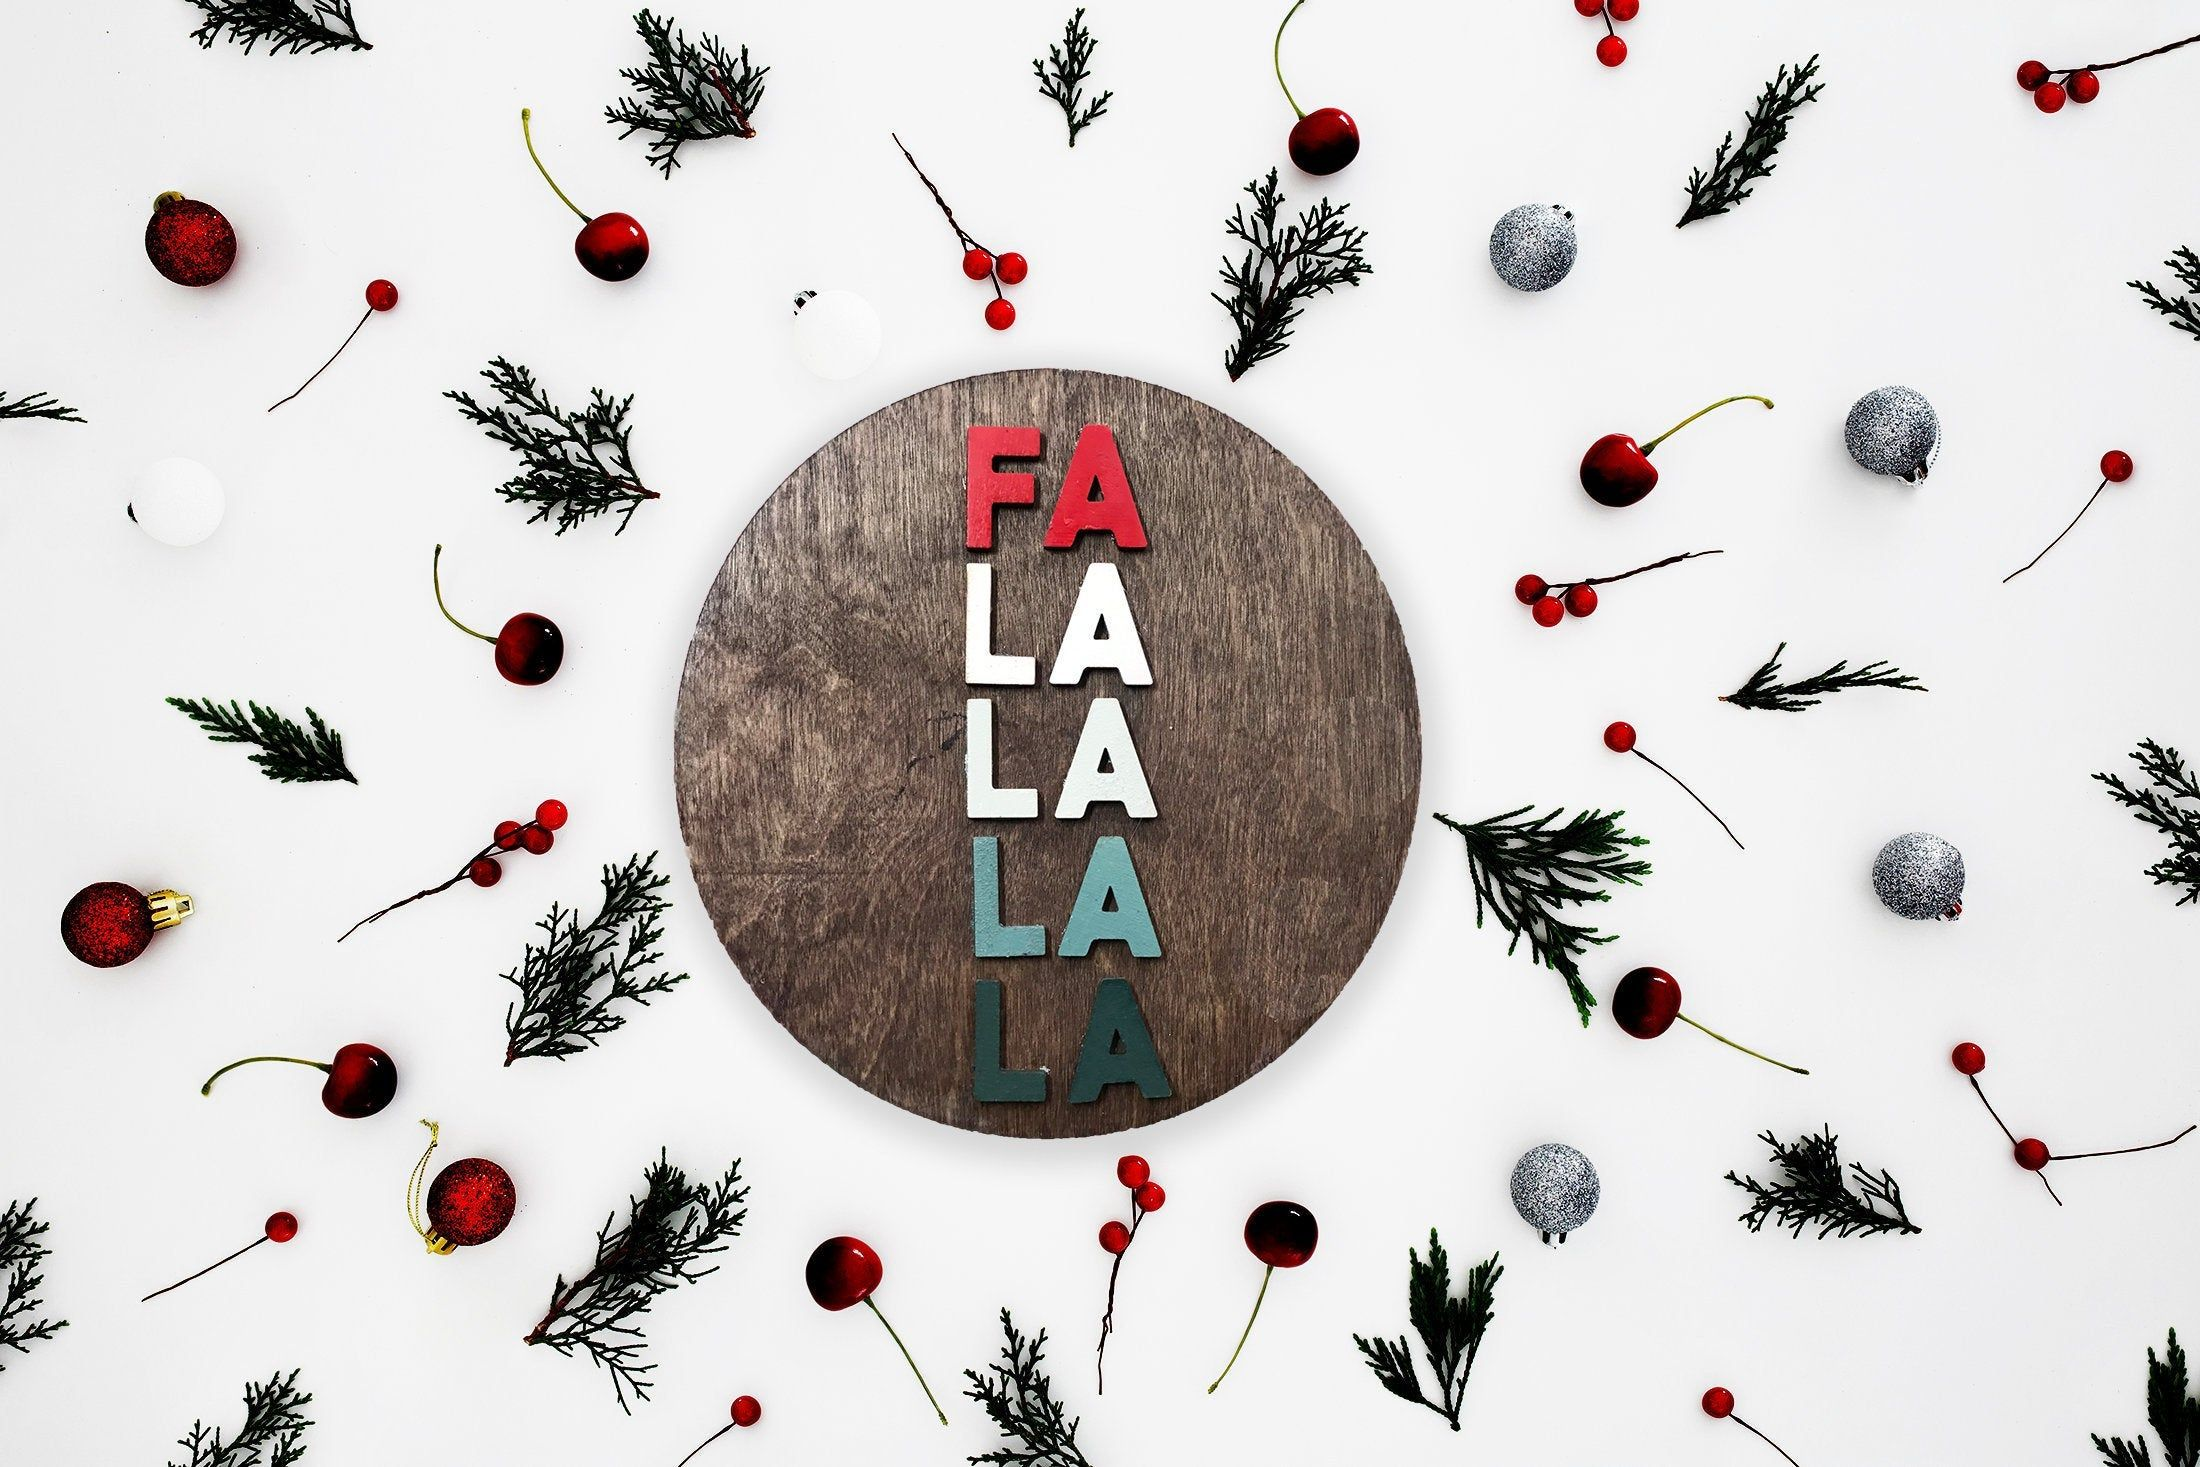 Fa La La La La Wood Circle Sign Christmas Carol Lyrics Etsy Christmas Carols Lyrics Wood Circles Christmas Carol